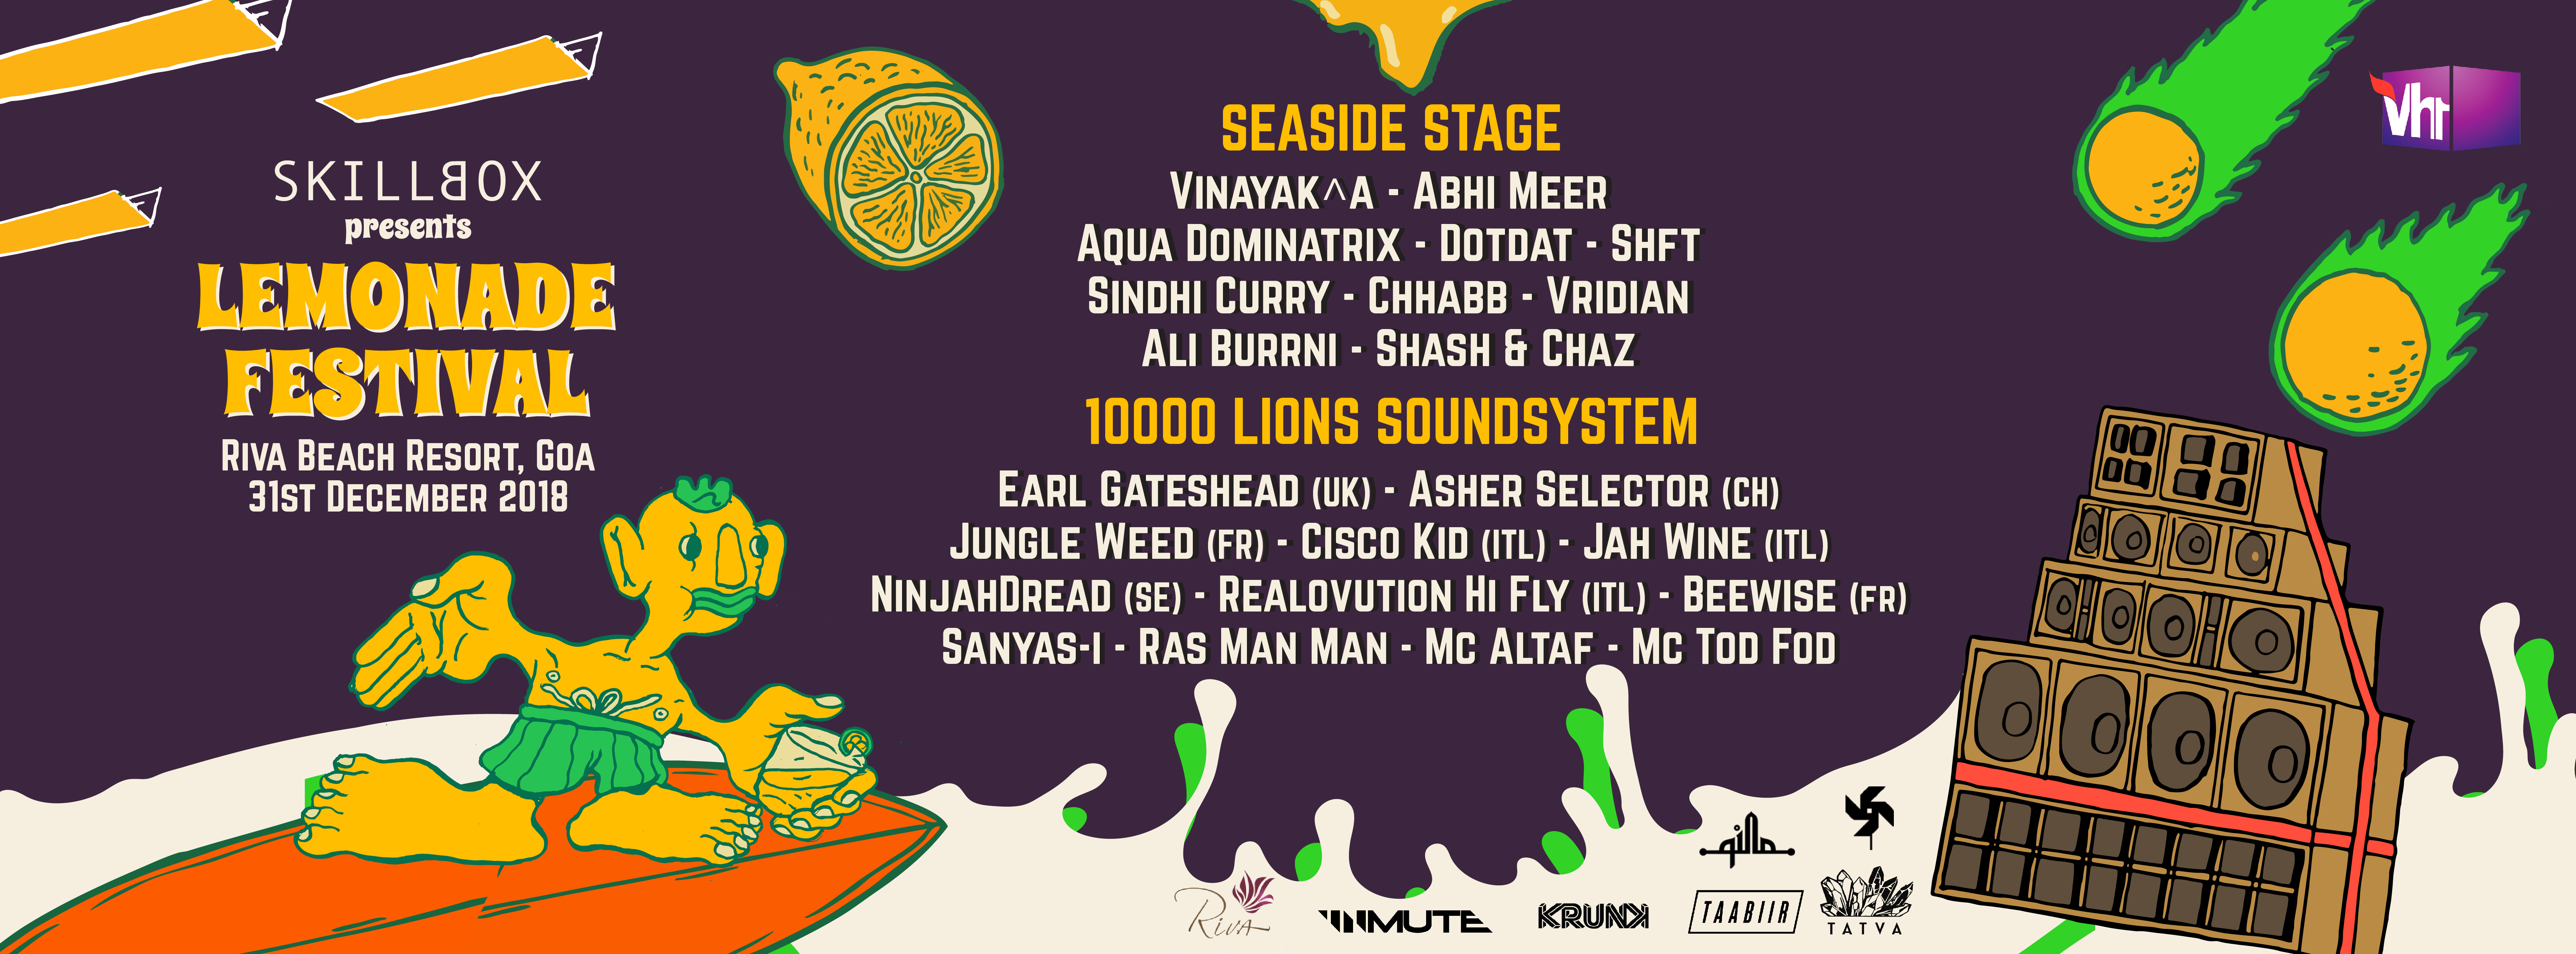 Lemonade Festival Goa